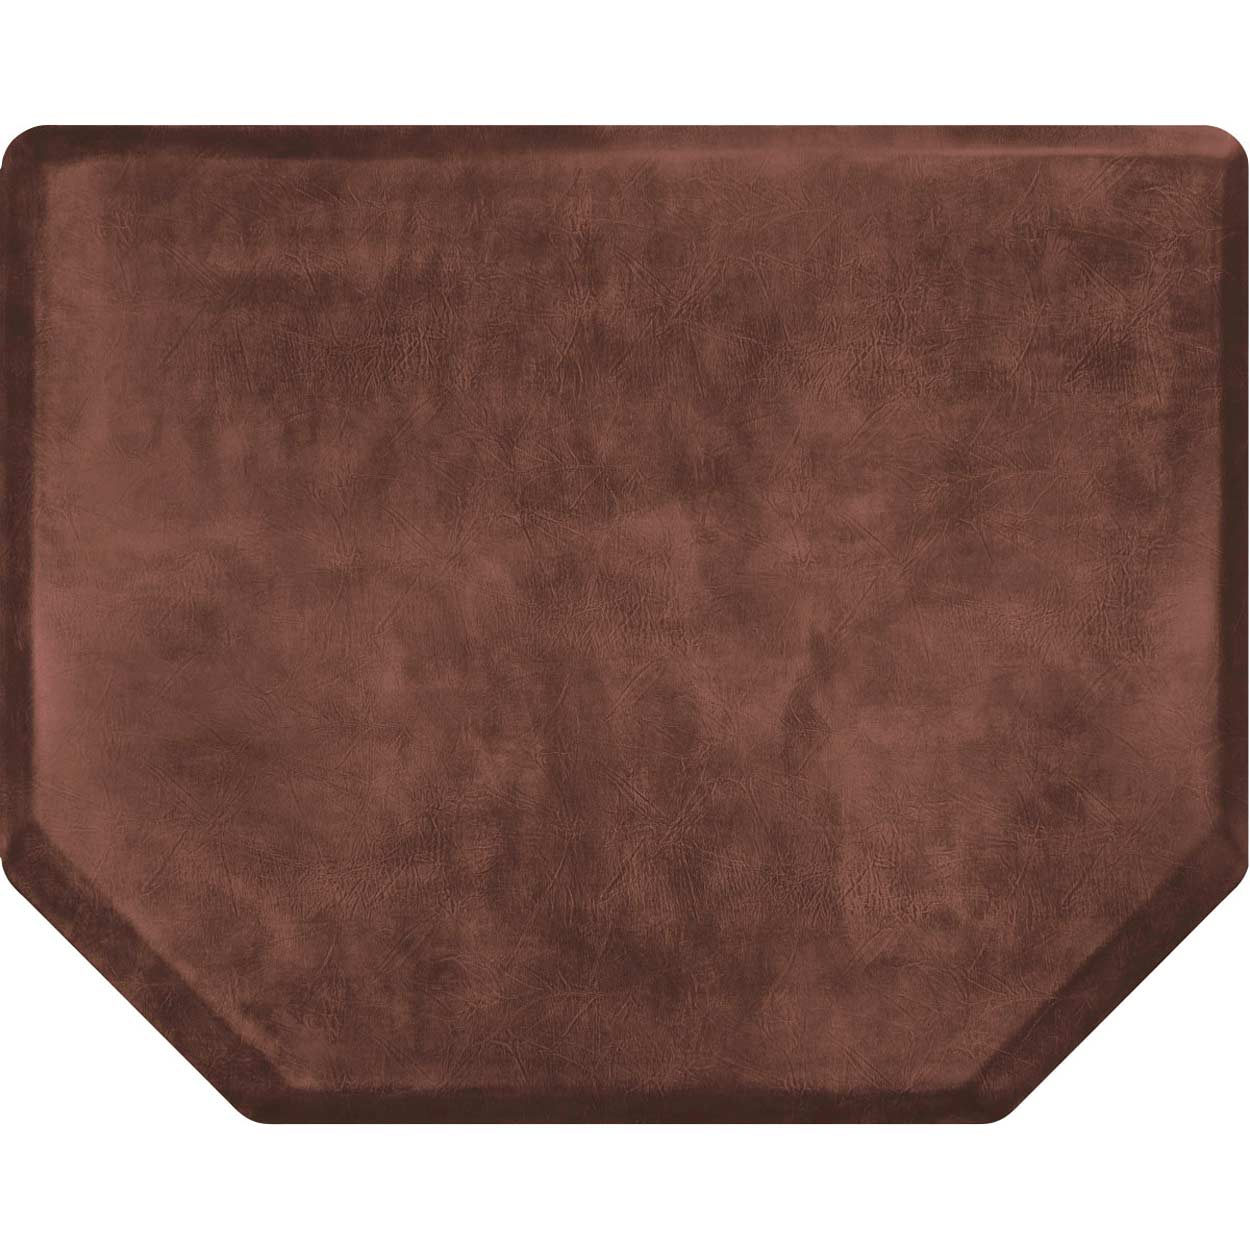 4x5 Vintage Leather Hex Salon Mat Without Chair Impression alternative product image 2